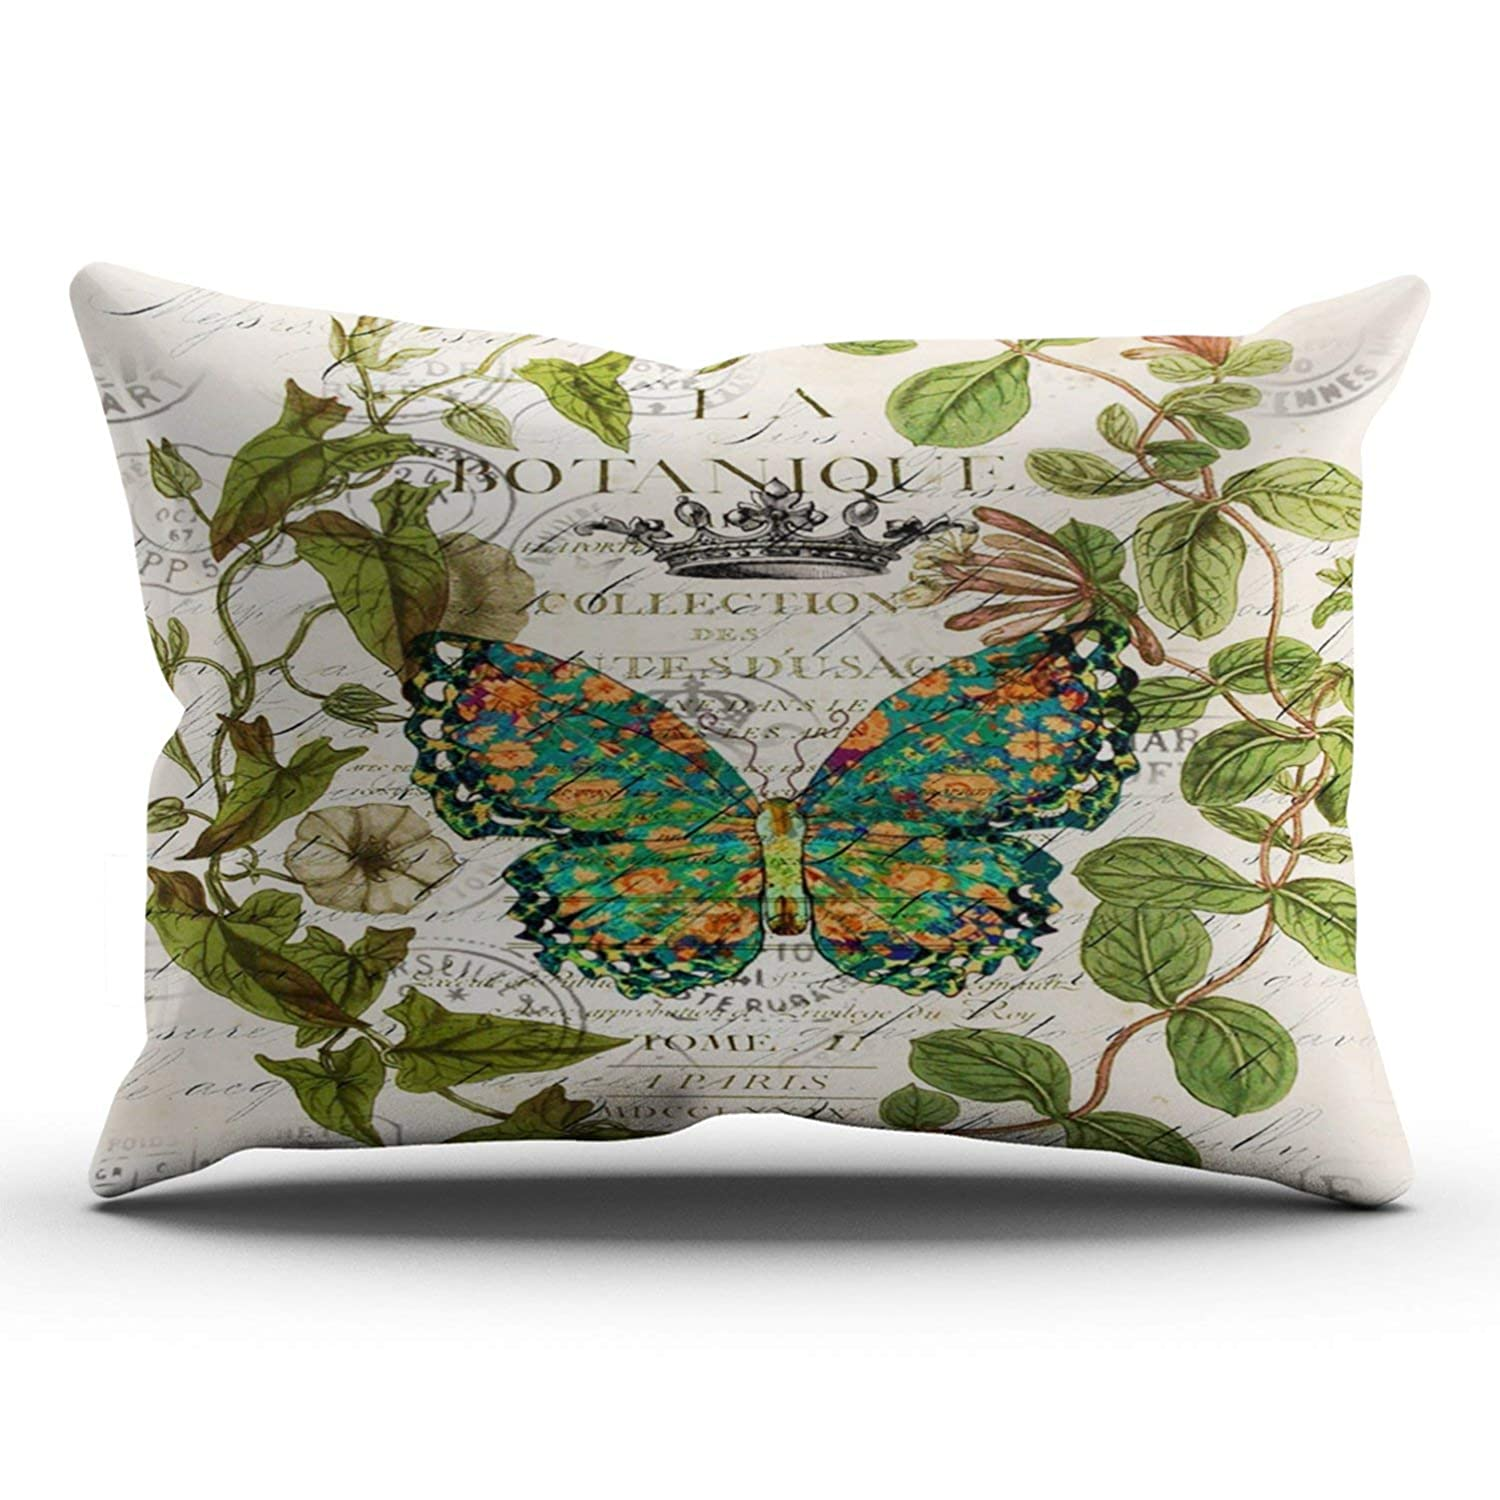 ONGING Decorative Pillowcases Green Bohemian Scripts French Botanical Butterfly Customizable Cushion Rectangle Lumbar Size 12x24 inches Throw Pillow Cover Case Hidden Zipper One Sided Design Printed